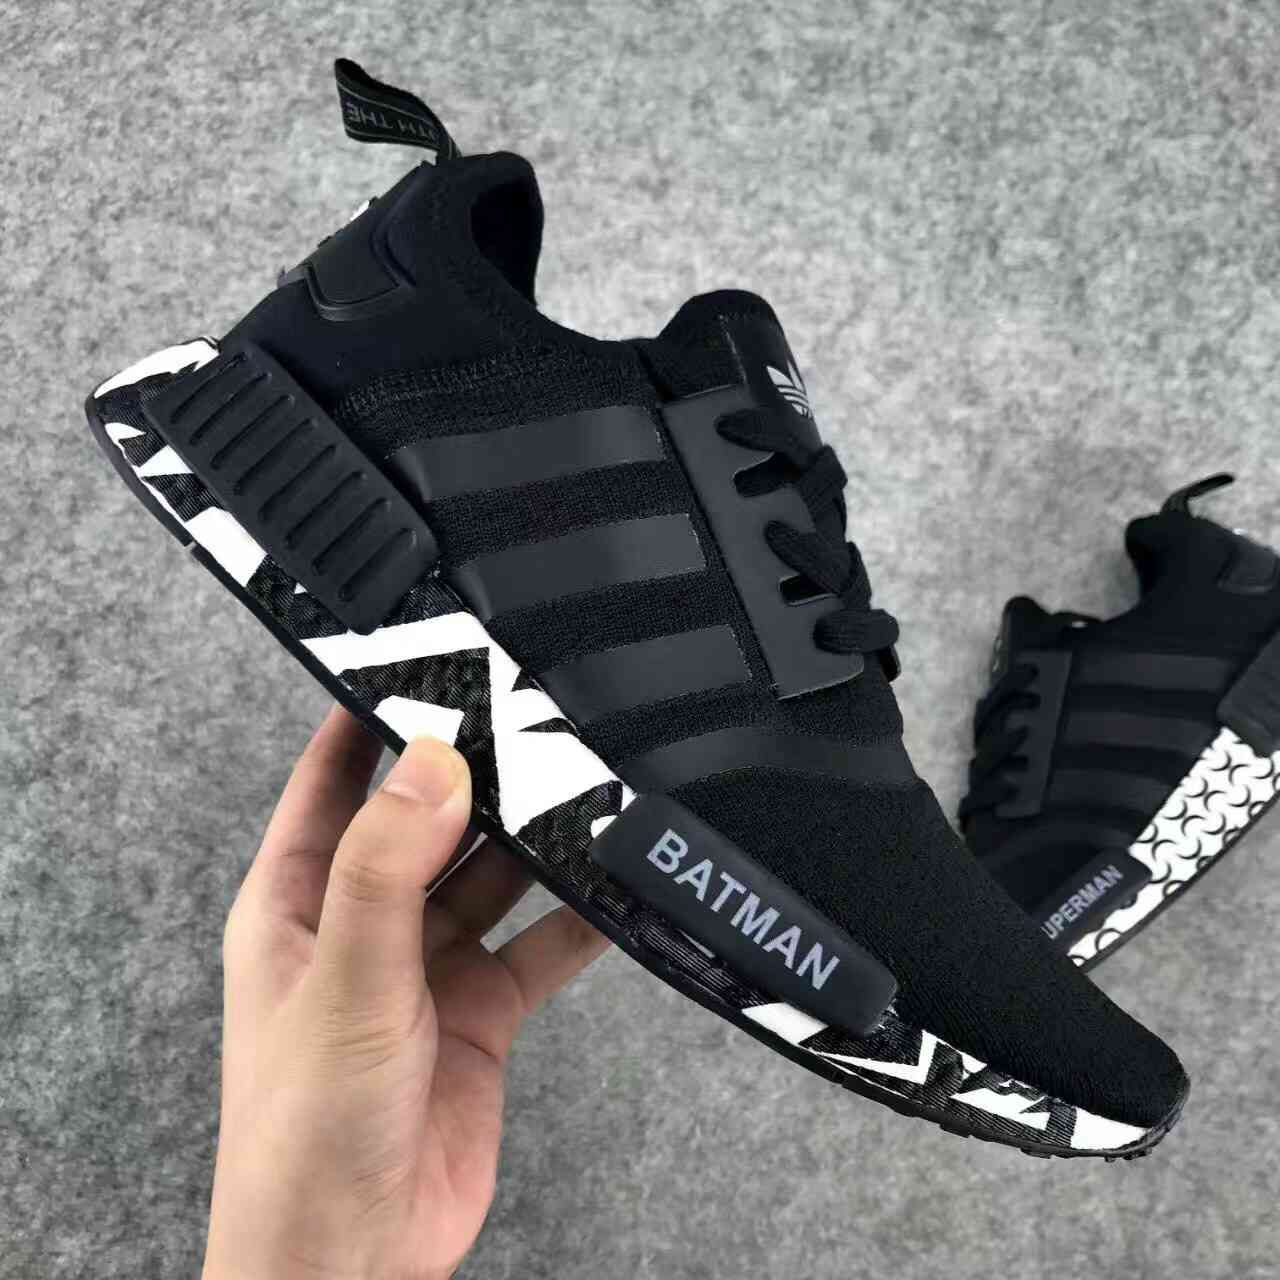 jordanshoes18 on in 2020 | Adidas iniki, Adidas iniki runner